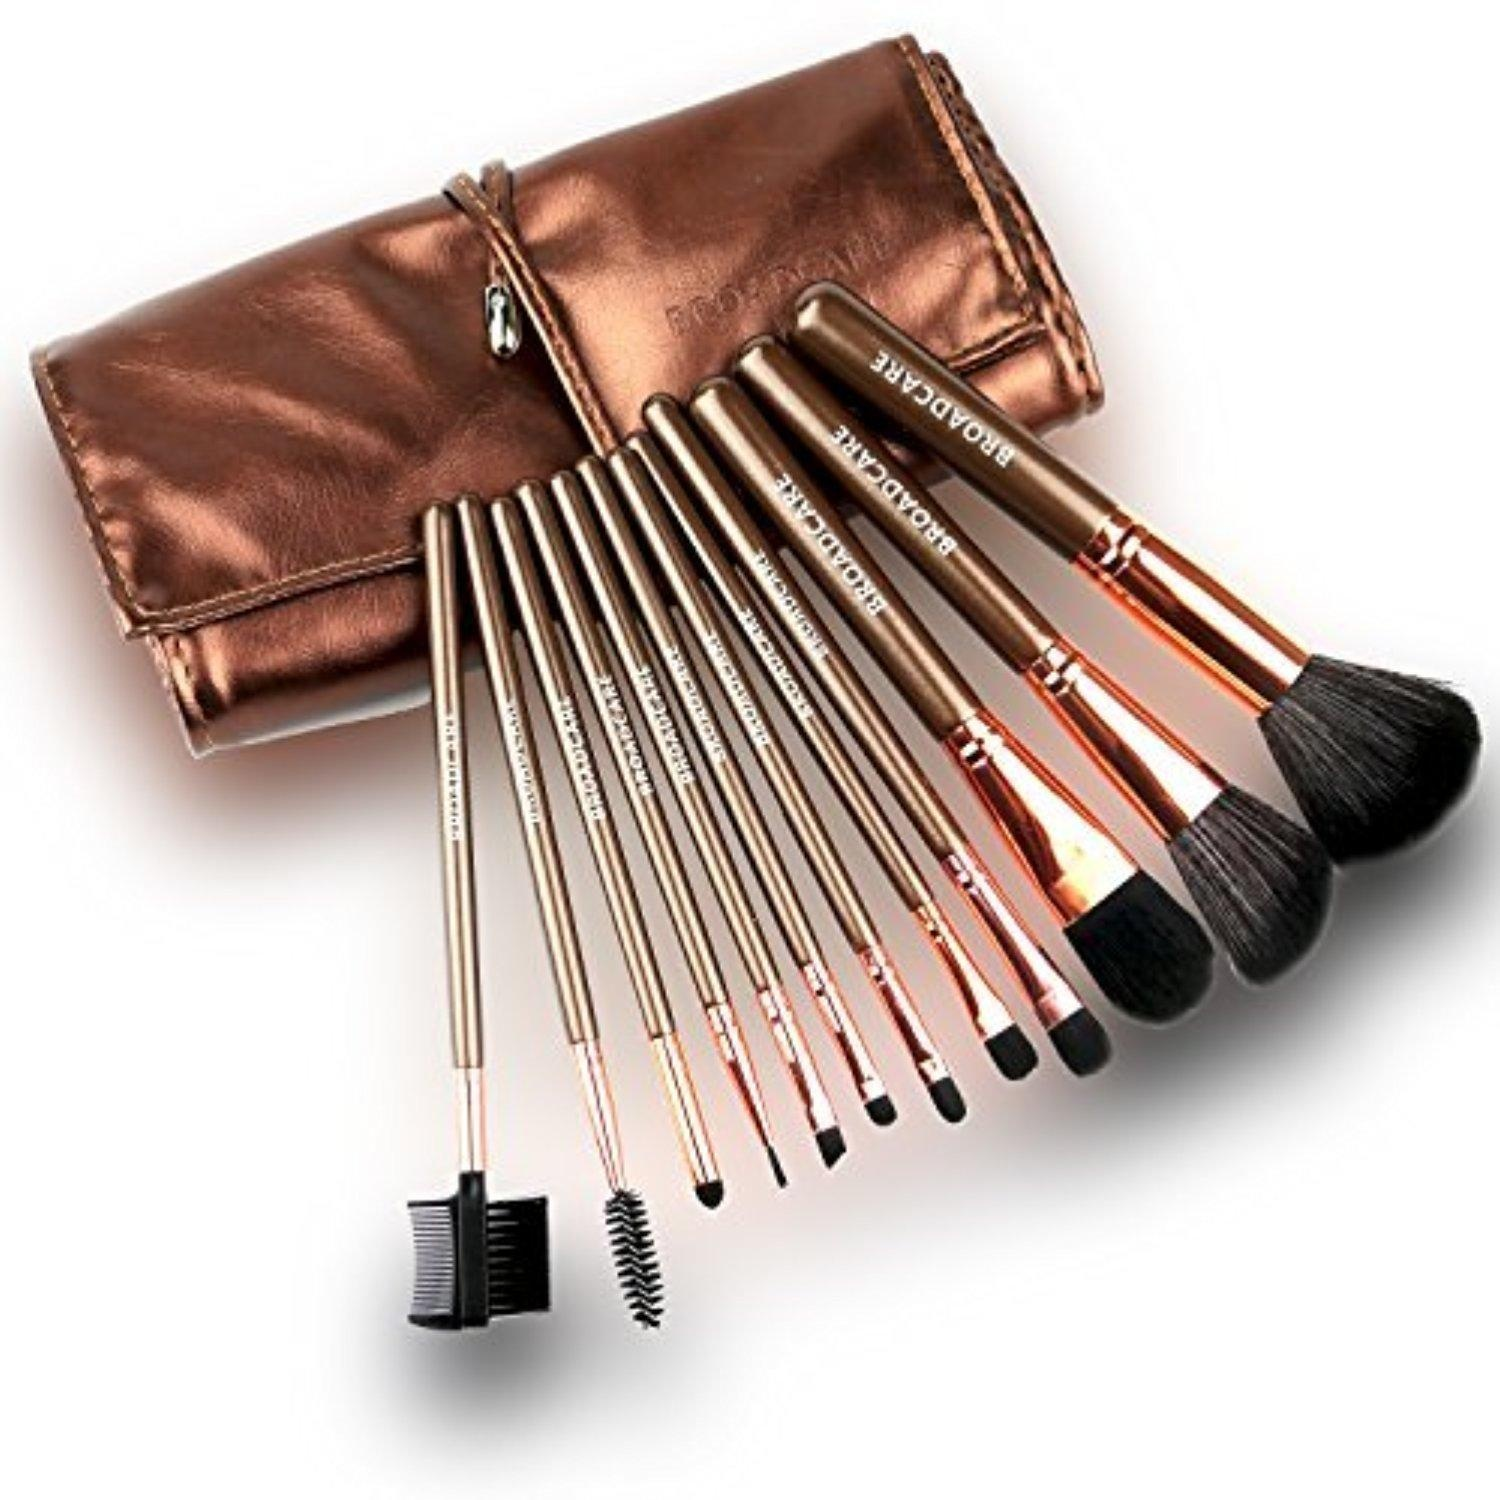 BROADCARE 12-Piece Make Up Brushes Set Professional Makeup Tool Cosmetic Kit Blush Eyeliner Face Powder Brush with Leather Case -Brown by BROADCARE